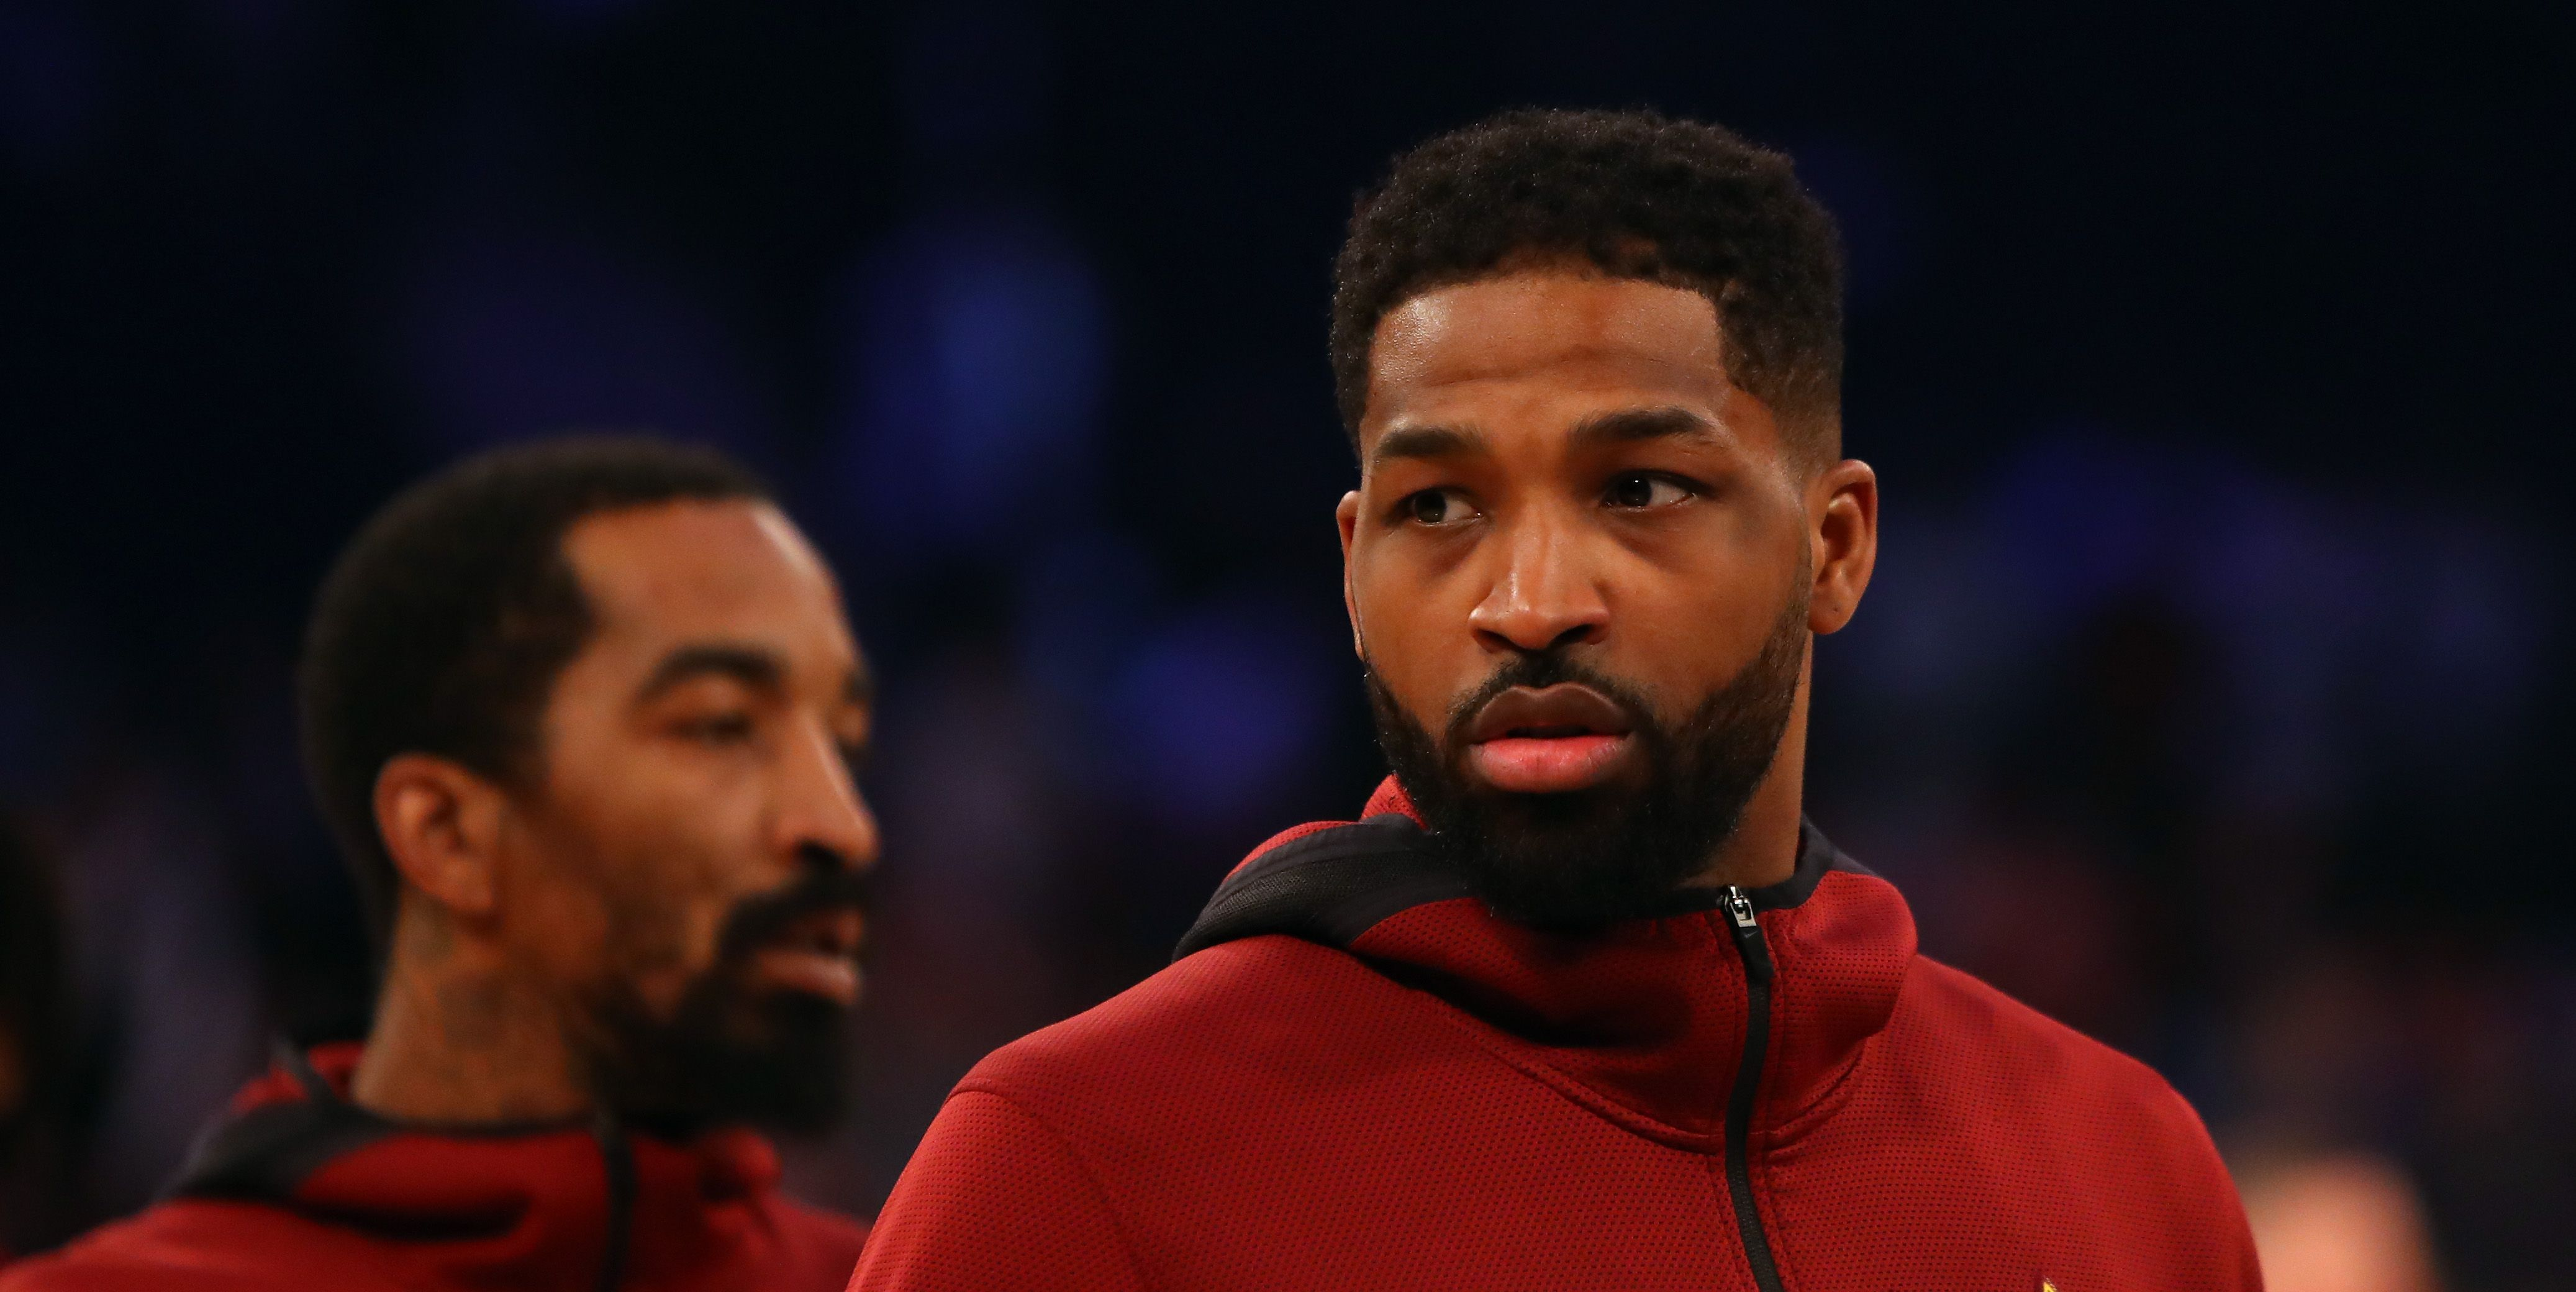 Tristan Thompson has been on two dates with the same woman since Khloe Kardashian split, apparently